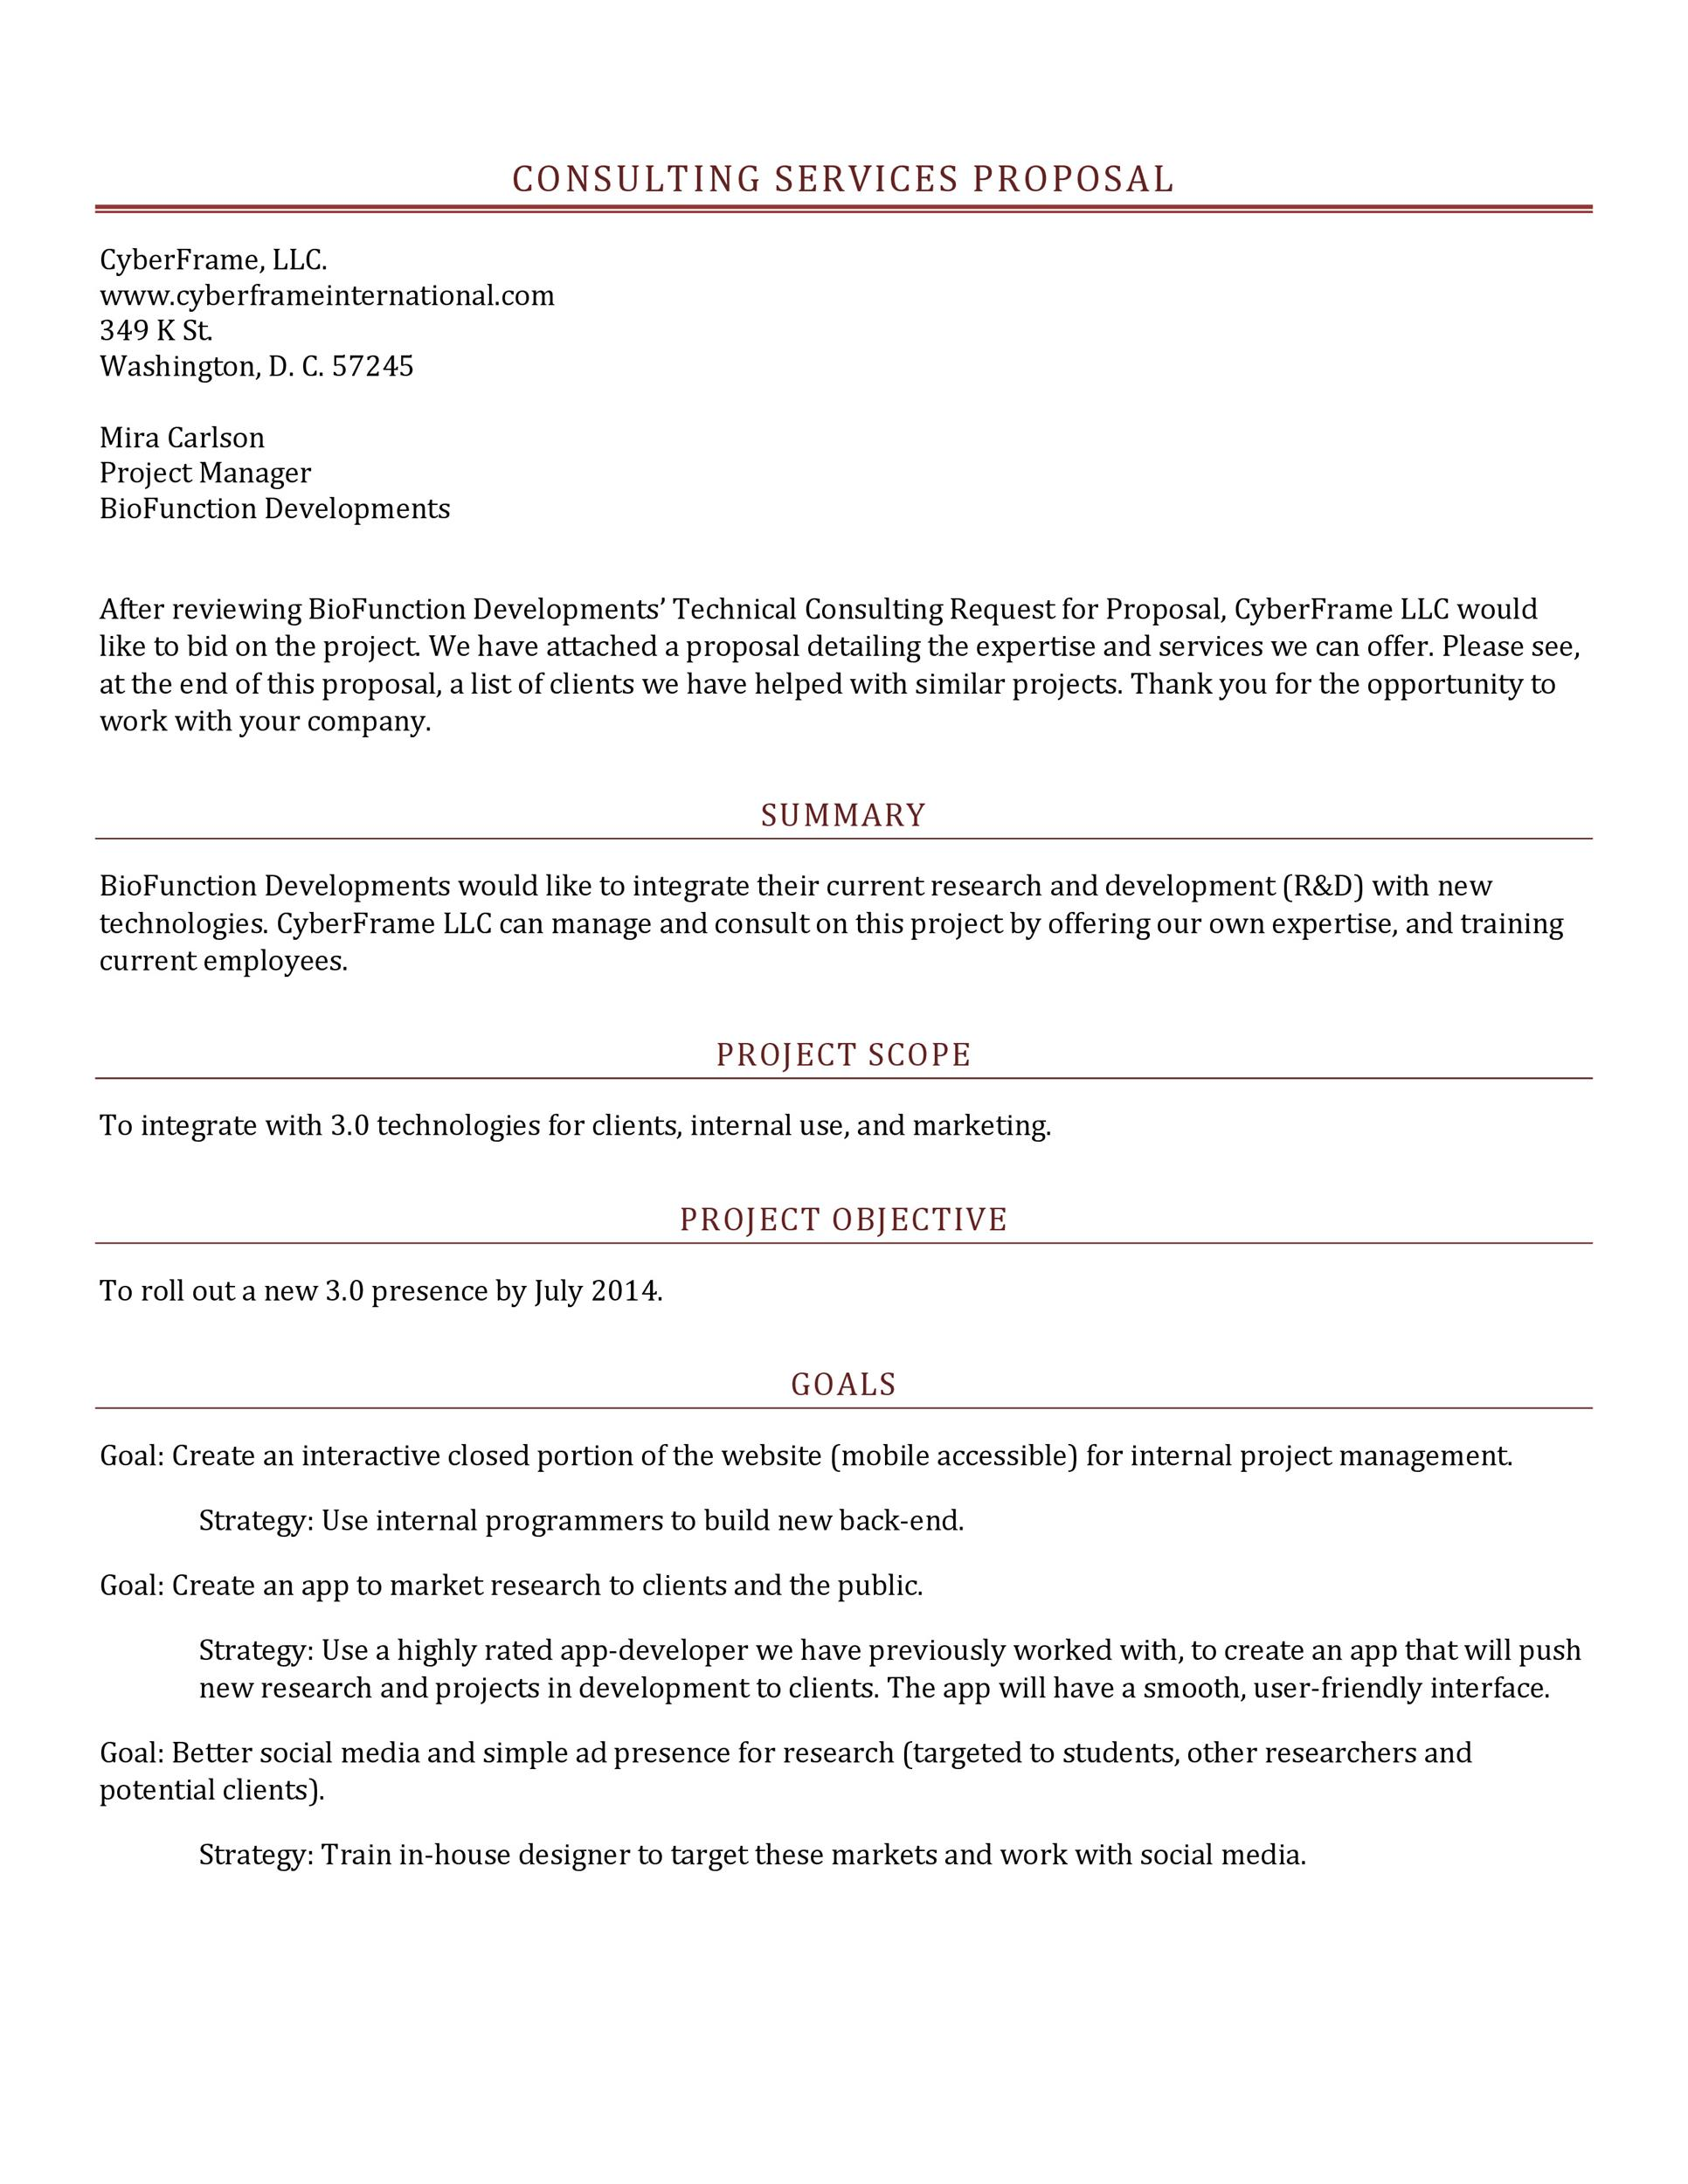 free consulting proposal template 07